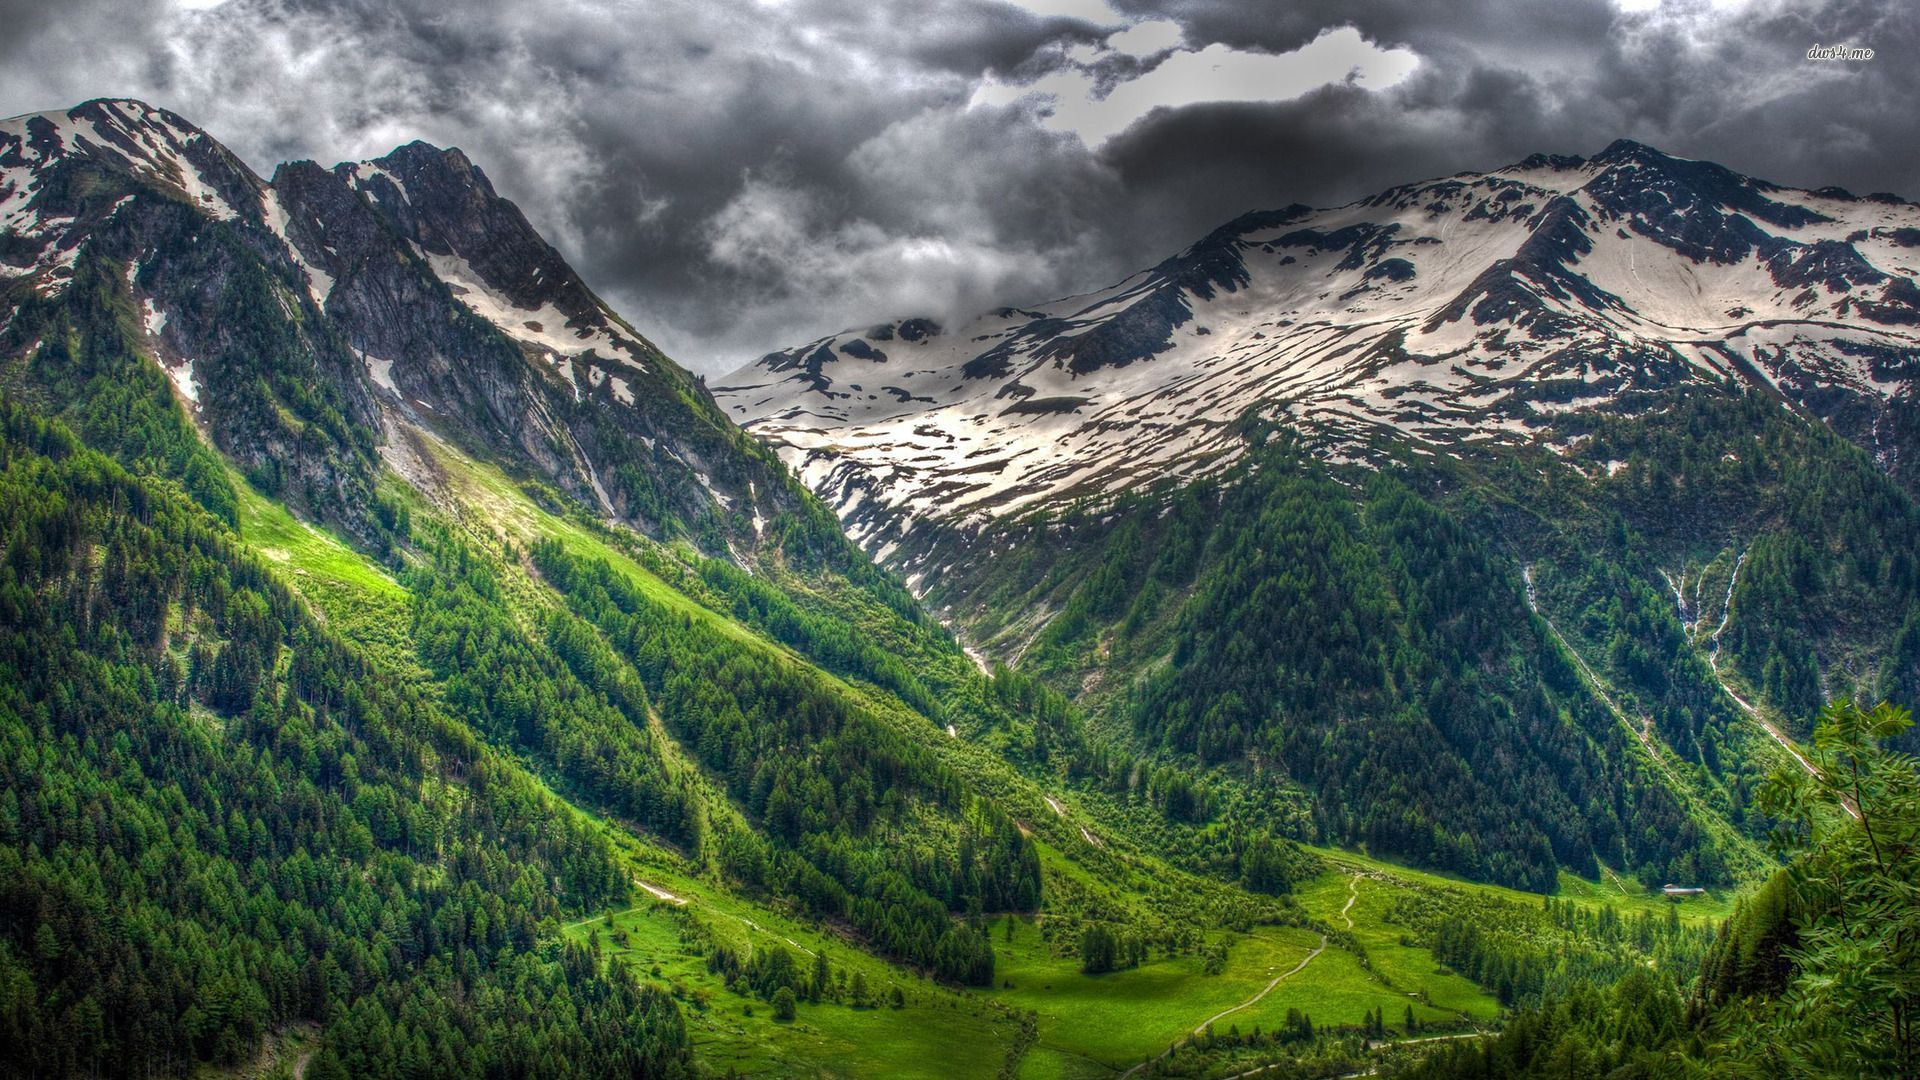 Background The Alps